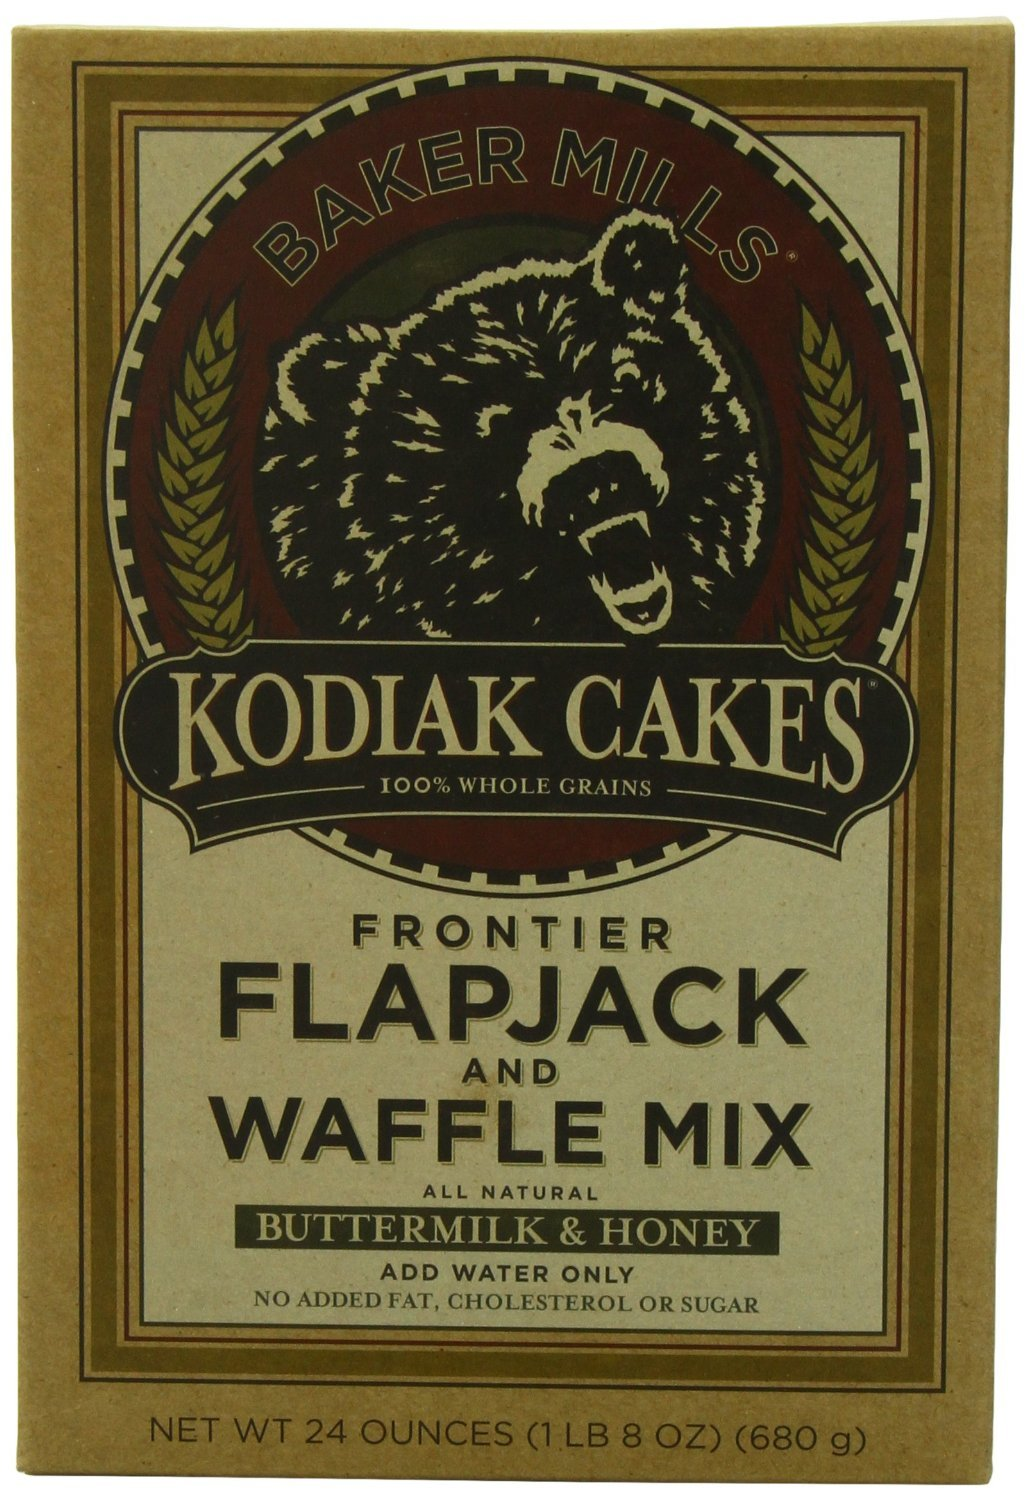 KODIAK MIX WFFL FLPJCK BTRMLK H 24OZ